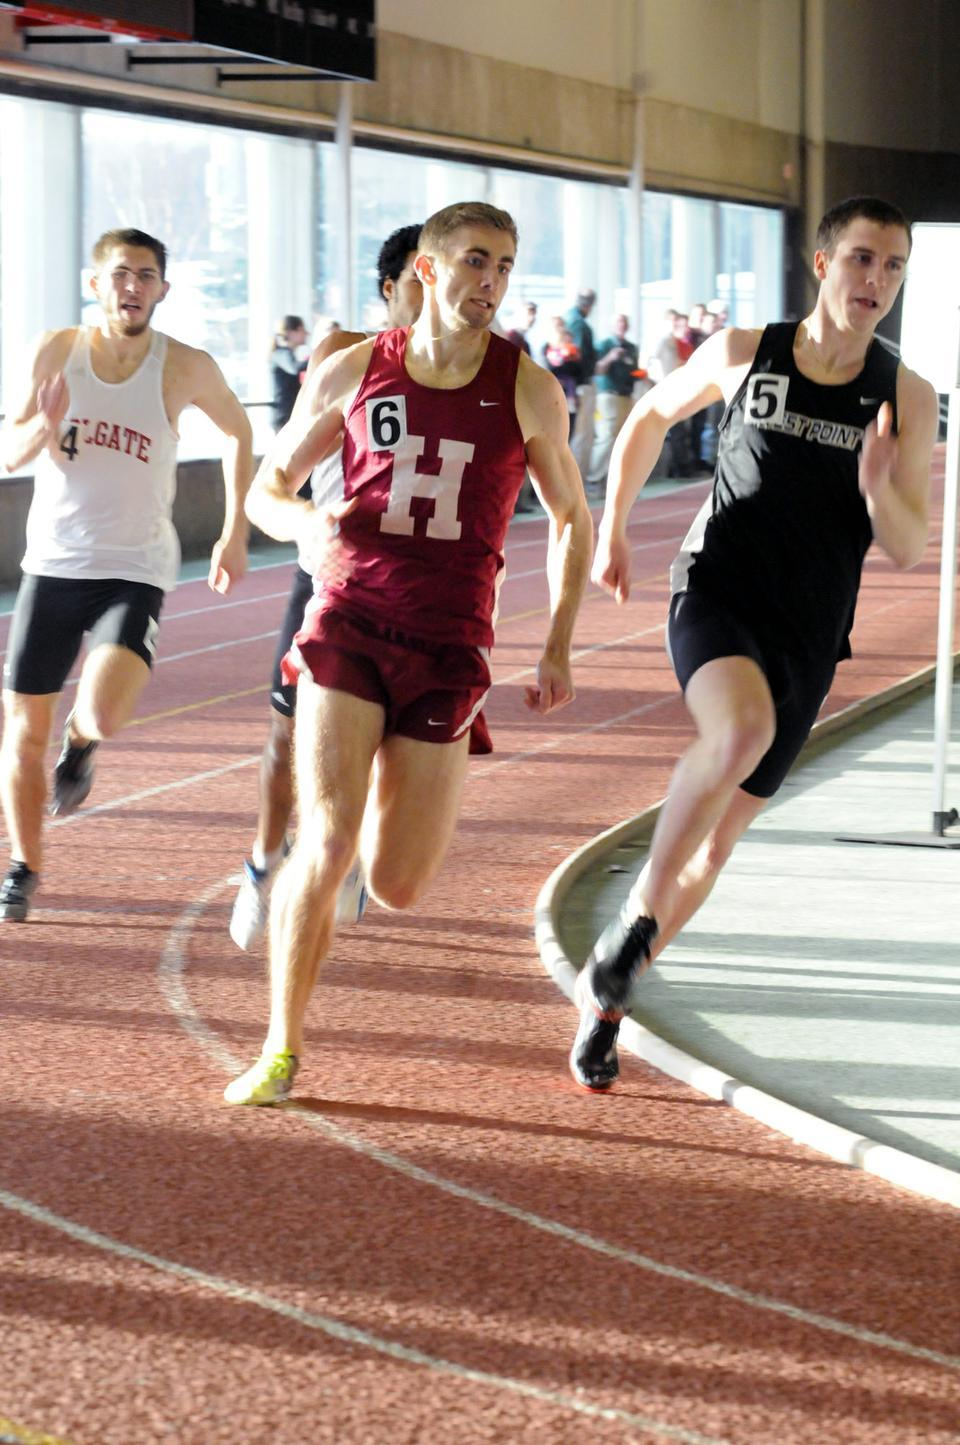 Senior middle-distance runner Brian Hill, shown above in earlier action, had an impressive showing over the weekend, posting a record time in the 800-meter event at the IC4A championships. The Crimson women finished sixth at ECACs, while the men came in 45th place at the IC4A meet.